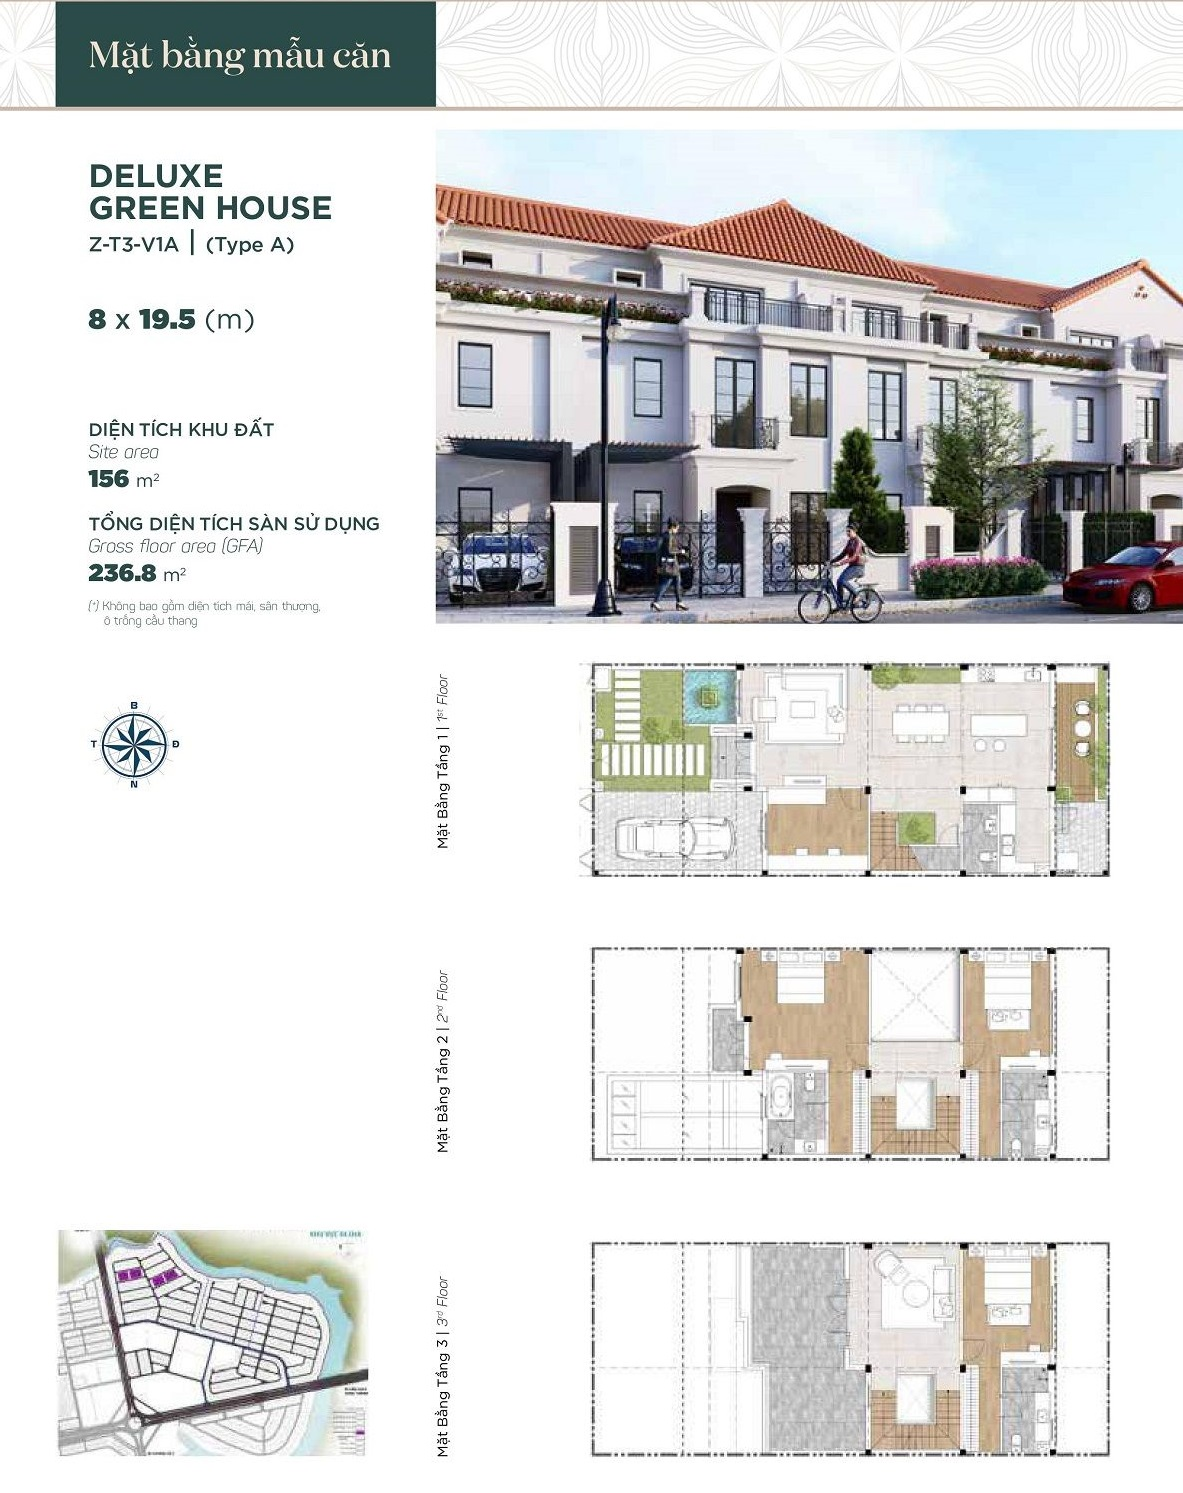 deluxe-green-house-8x19-5m-type-a-valencia